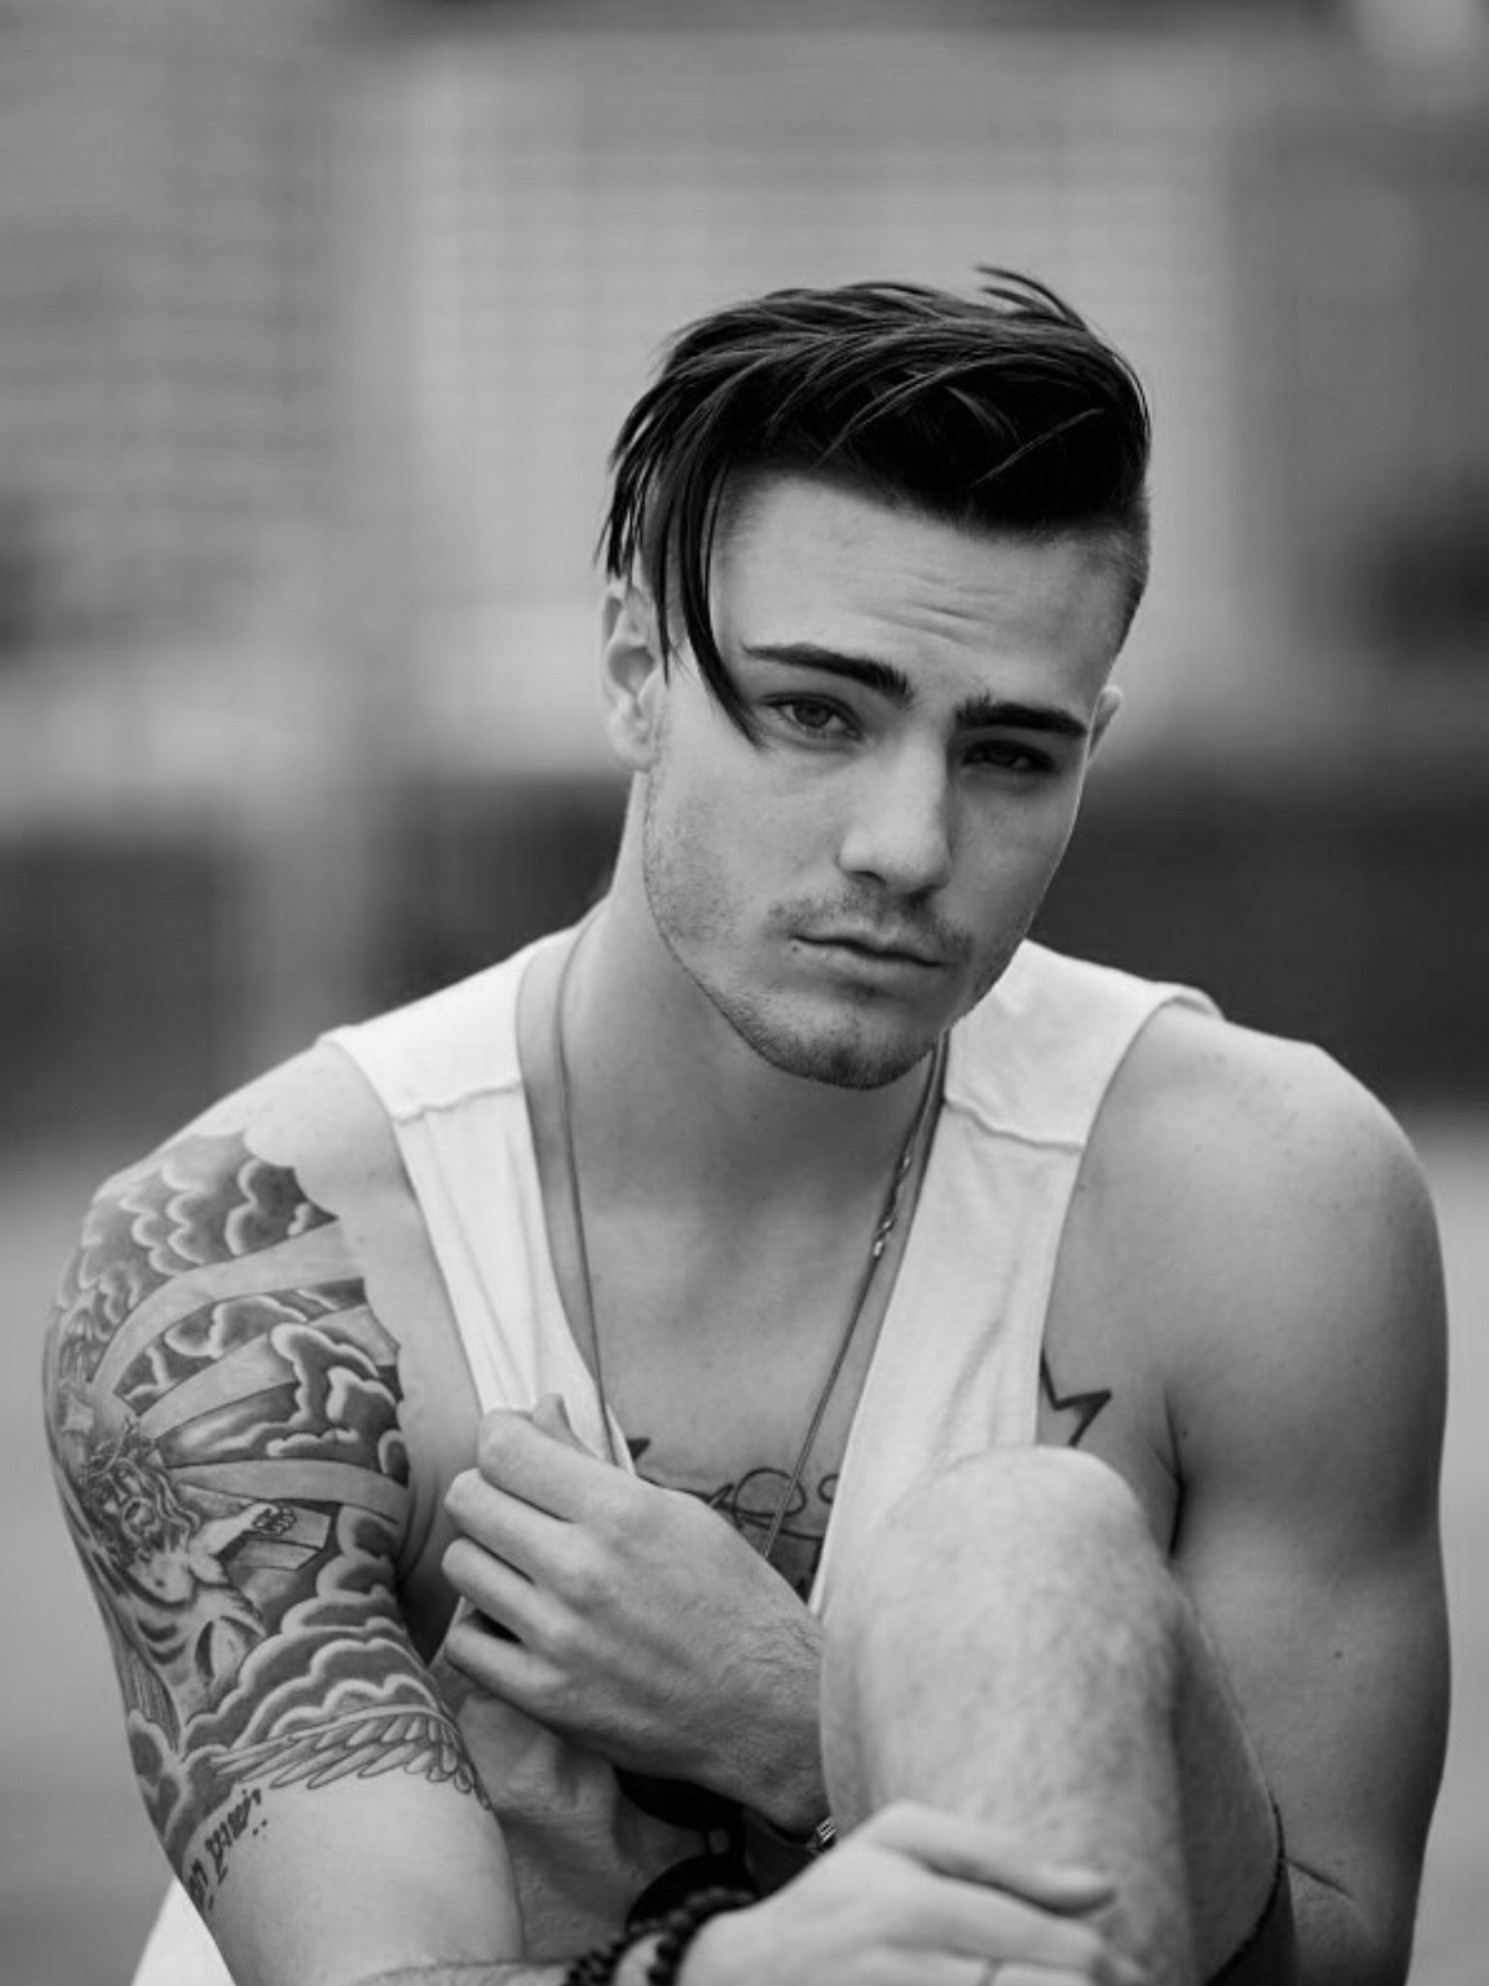 Pin By Lipper 12 On Haircuts Mens Hairstyles Fade, Hipster Shaved Sides Long Hair On Top